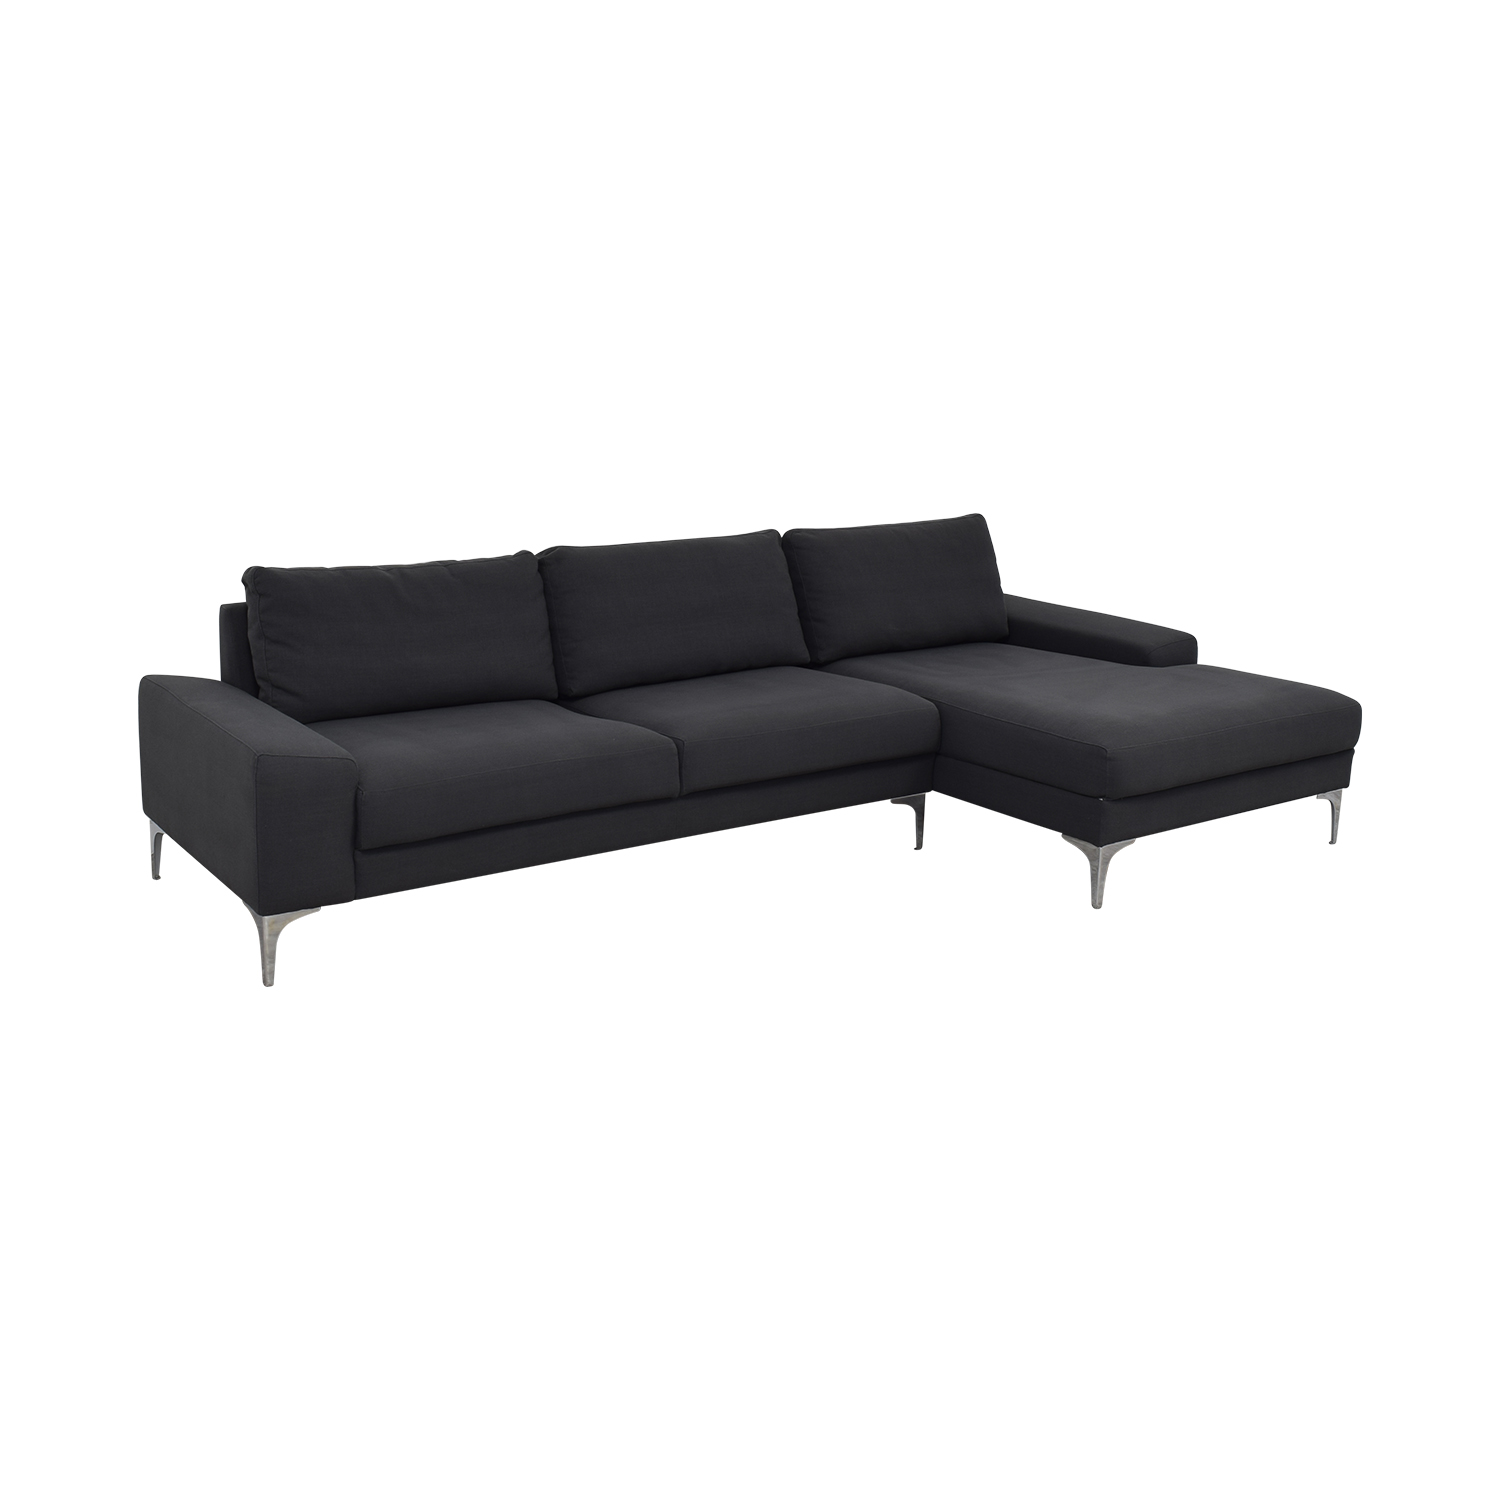 Industry West Industry West Sectional Sofa nj